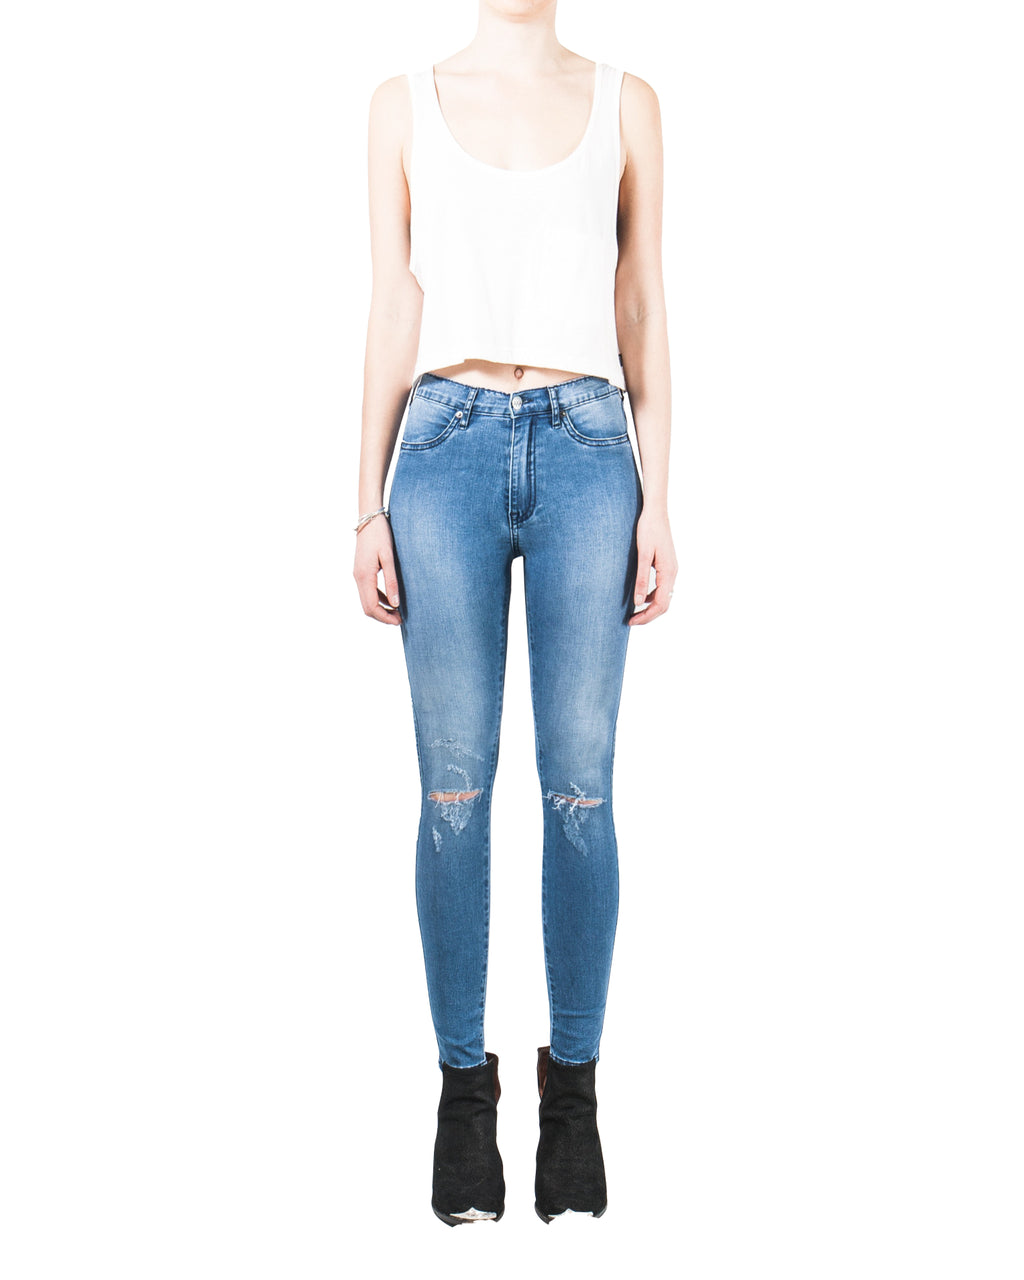 ZIGGY Denim - Swizzle Sticks Jeans - Street Sweeper Slash